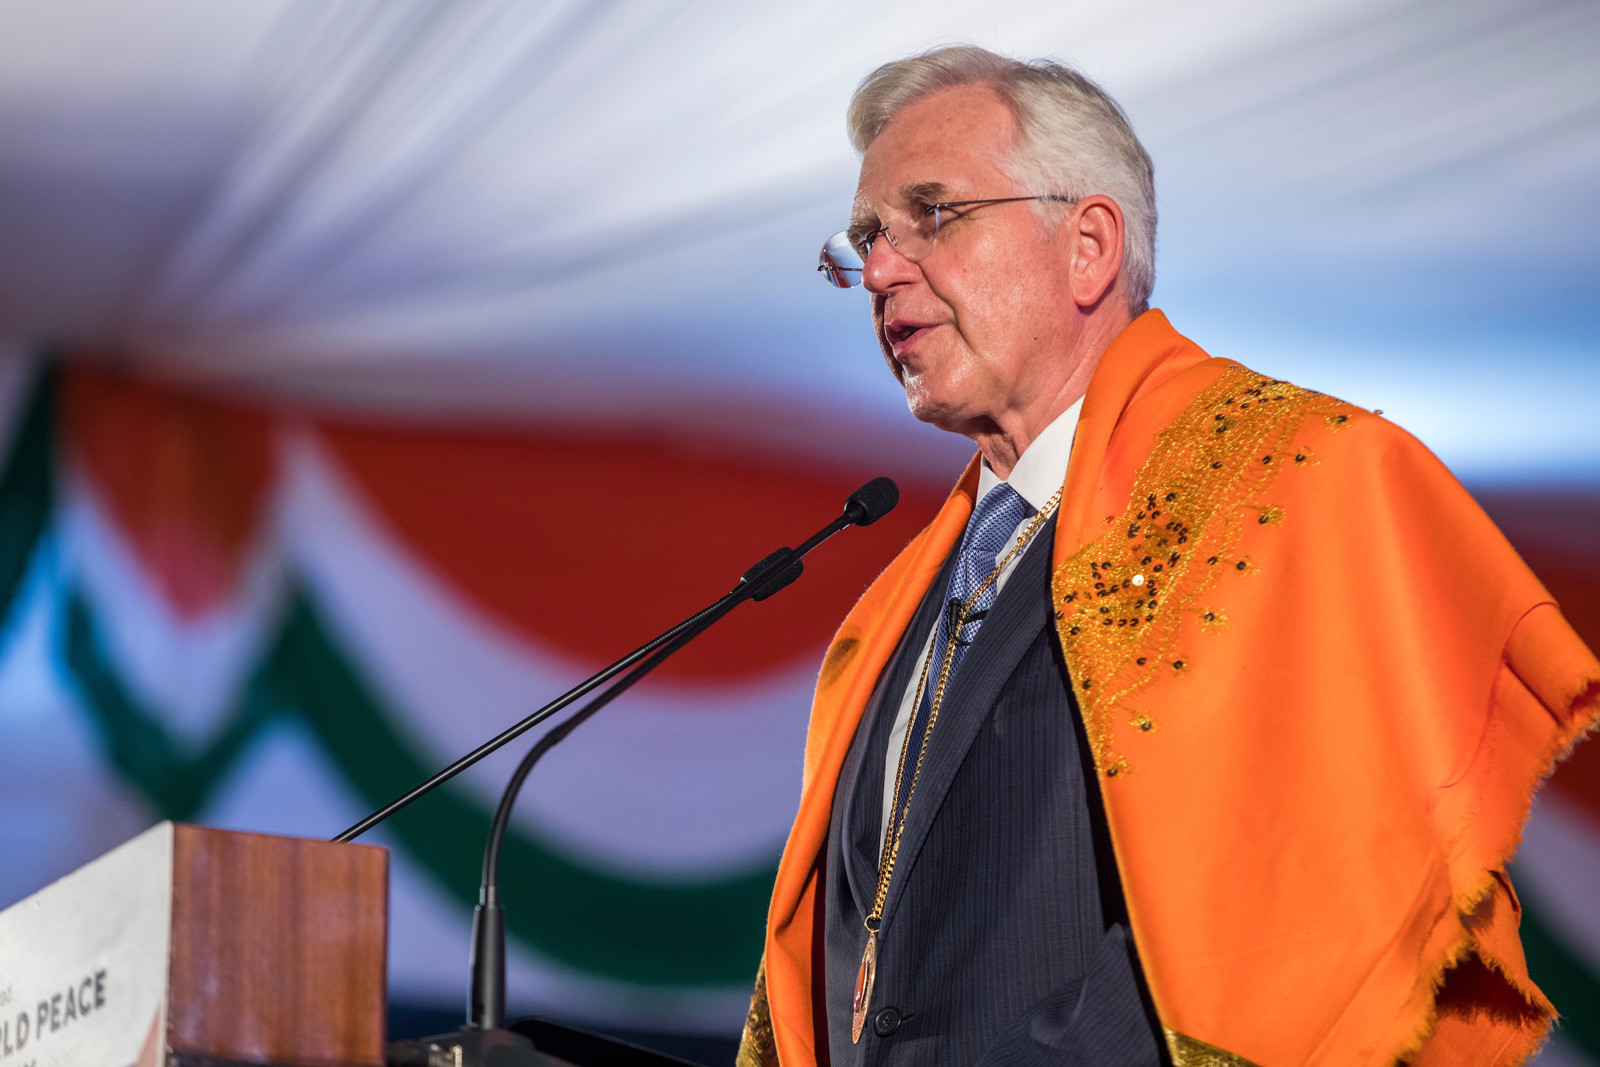 Elder D. Todd Christofferson, a member of the Quorum of Twelve Apostles of The Church of Jesus Christ of Latter-day Saints, speaks after receiving the 2017 Philosopher Saint Shri Dnyaneshwara World Peace Prize during an award ceremony at the MIT World Peace University in Pune, Maharashtra, India on August 14, 2017.